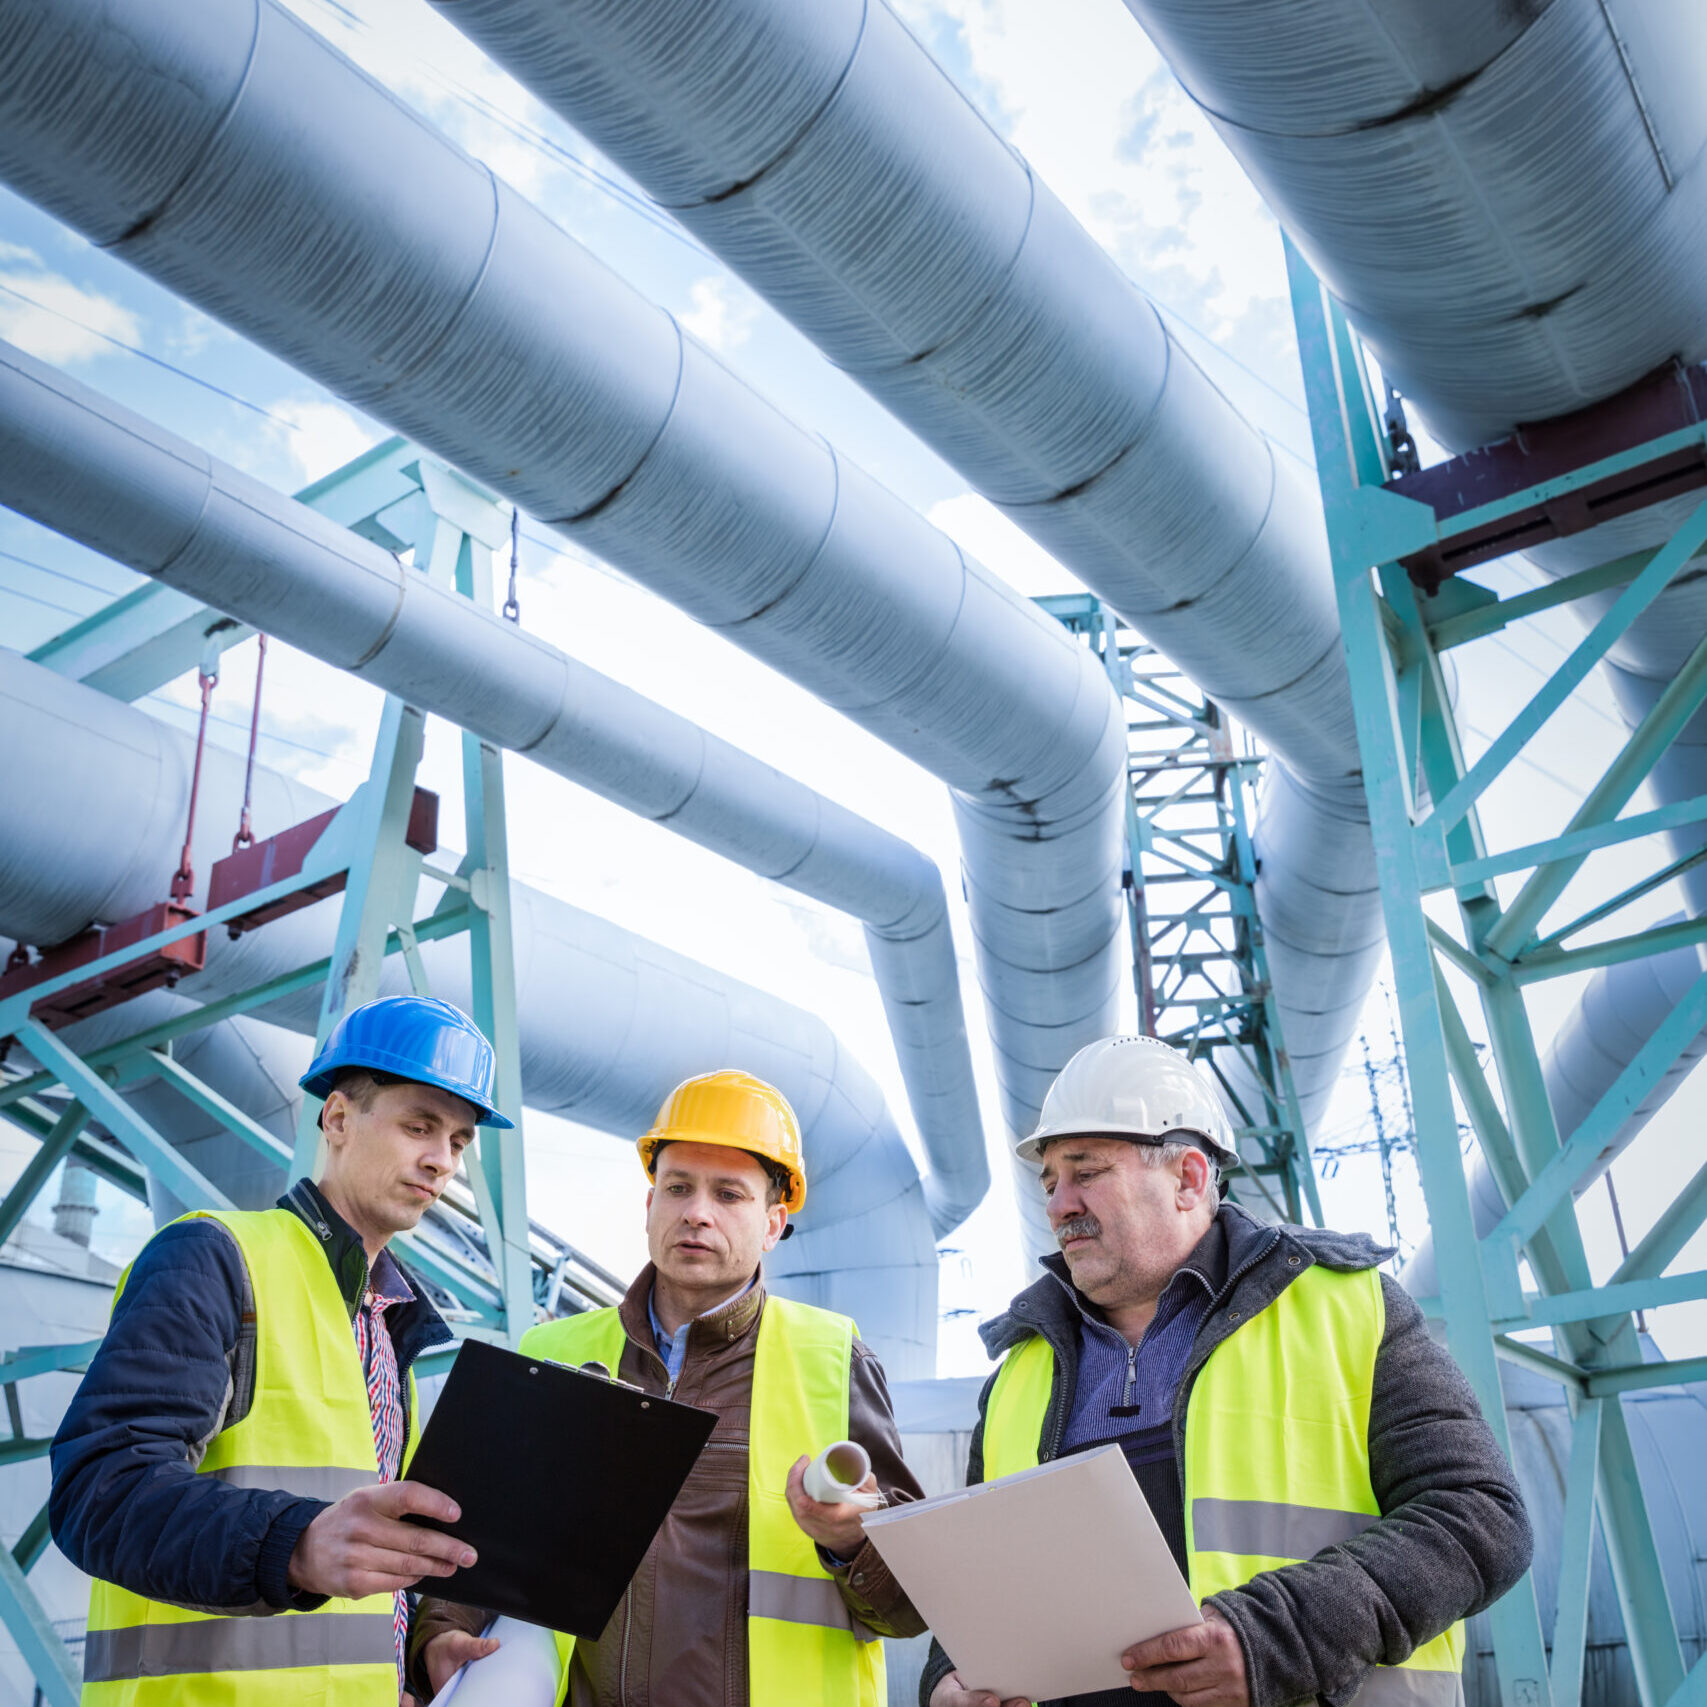 Engineers discussing maintenance of a petrochemical plant. Technical inspection. Oil and gas industry.